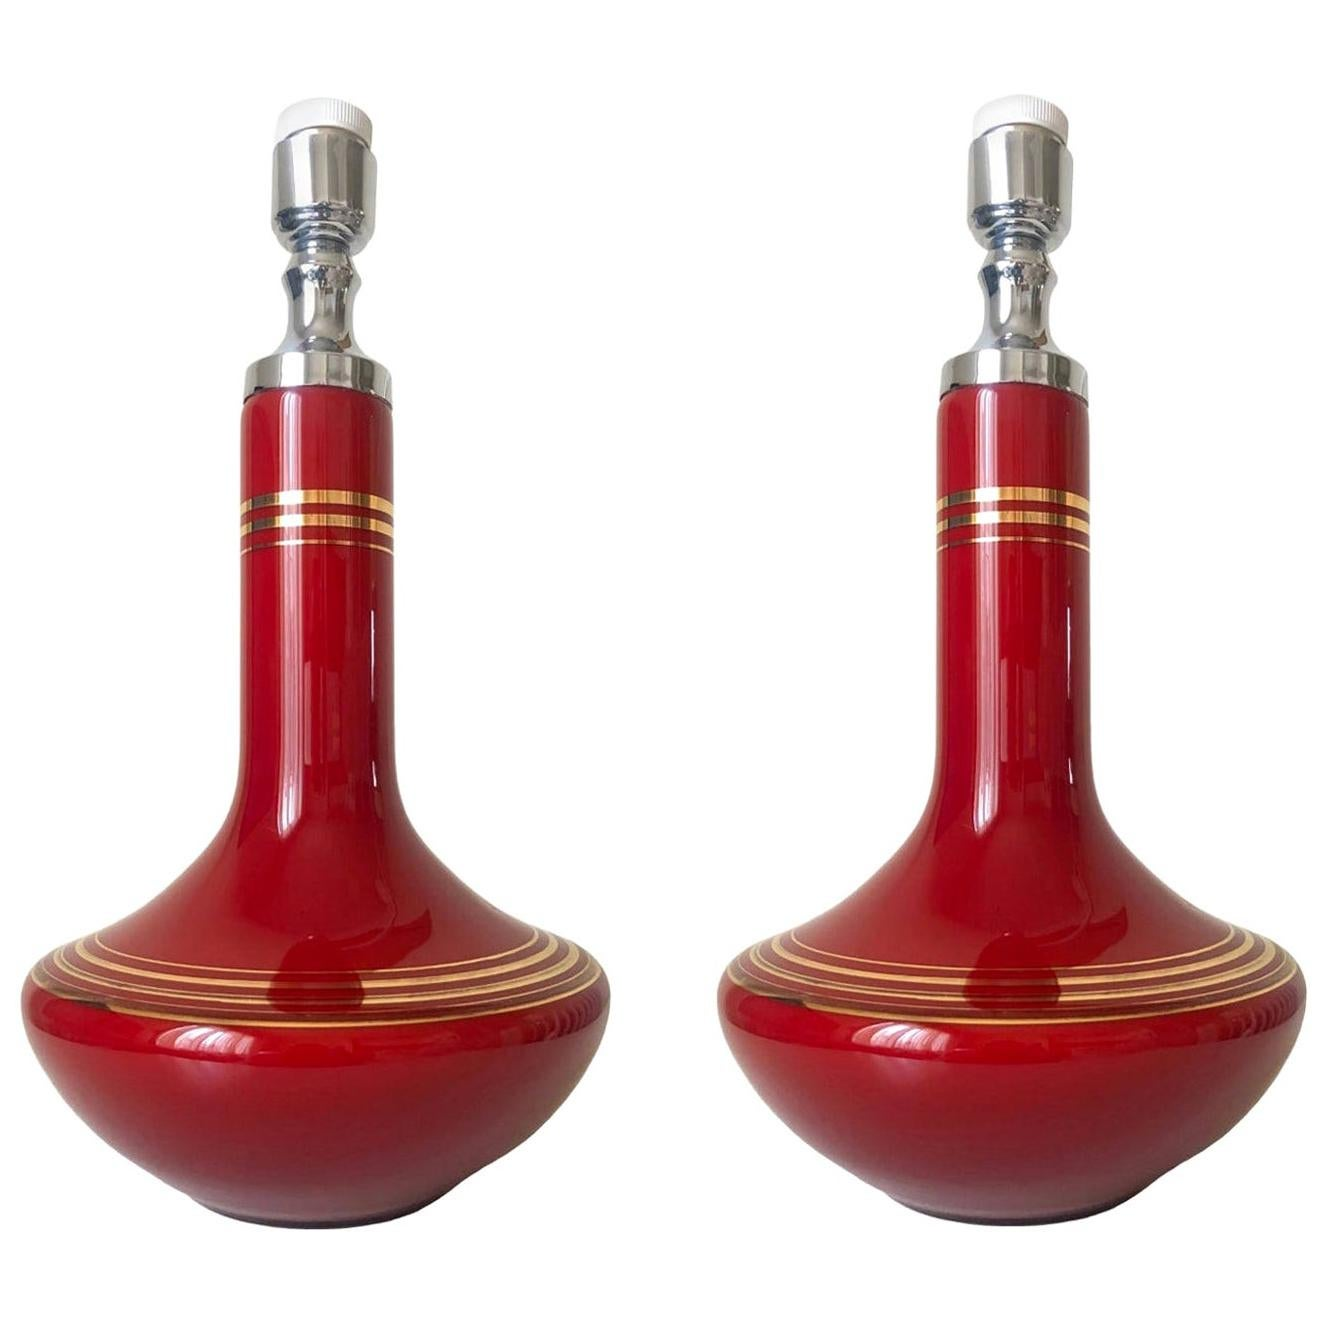 Pair of Midcentury French Opaline Glass Table Lamps, 1970s